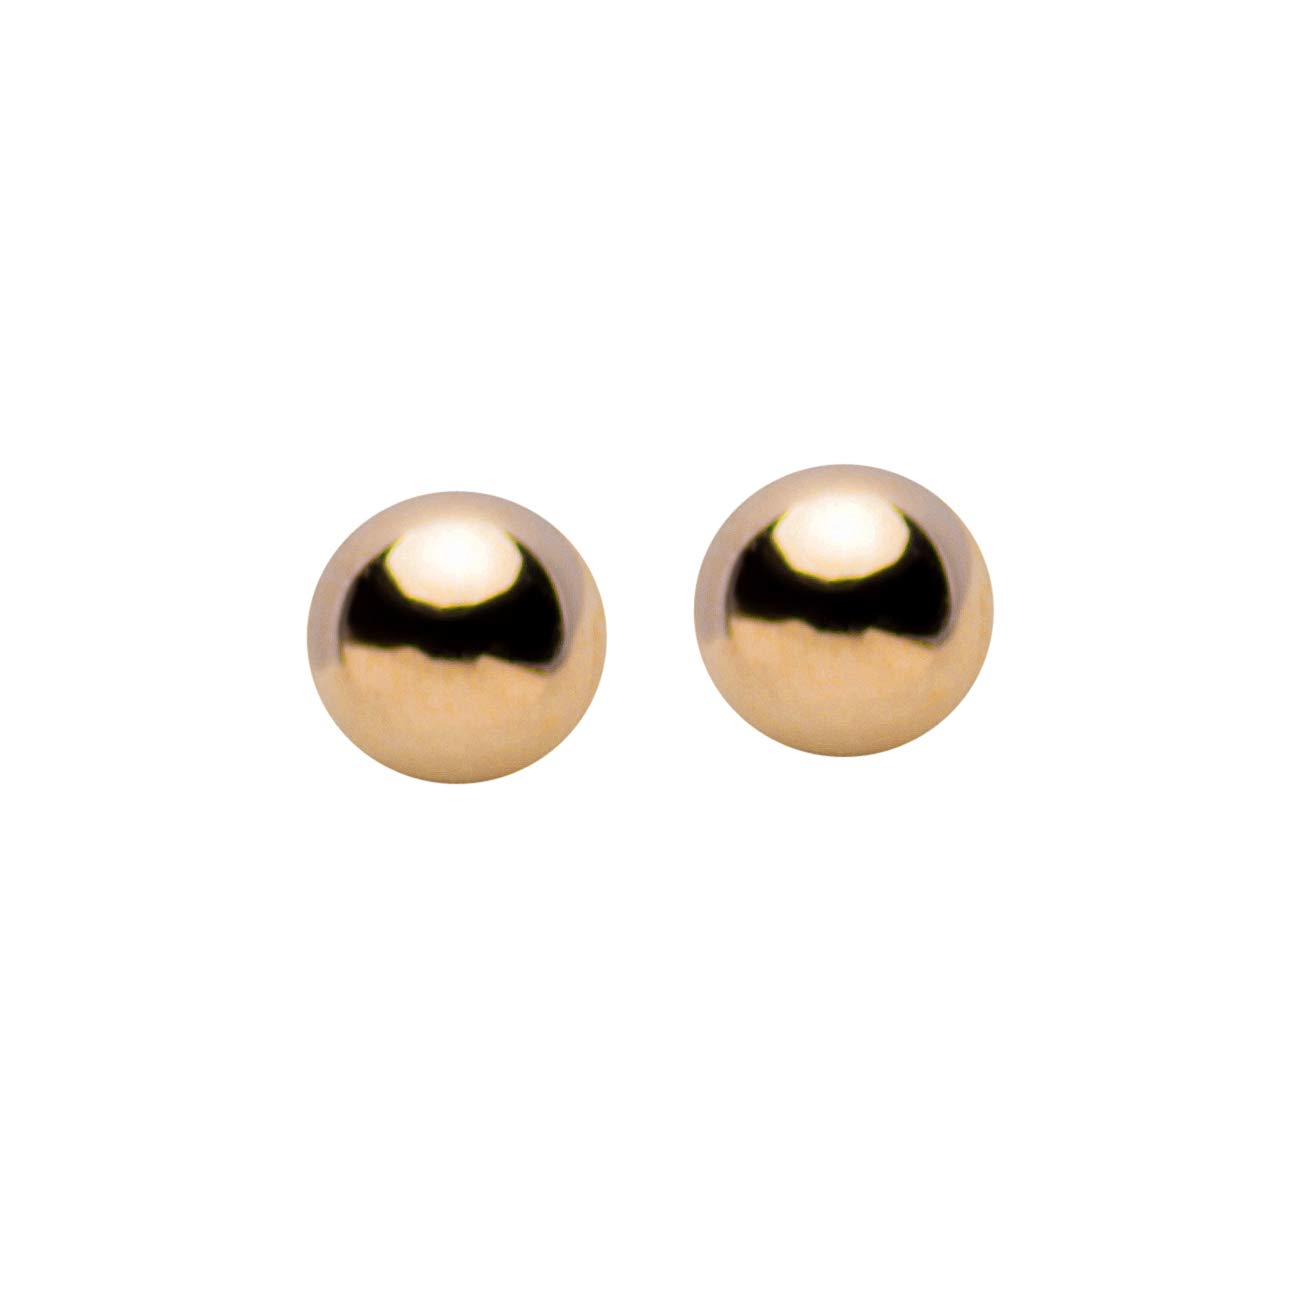 10K Classic and Traditional 6mm Yellow Gold Ball Stud Earrings